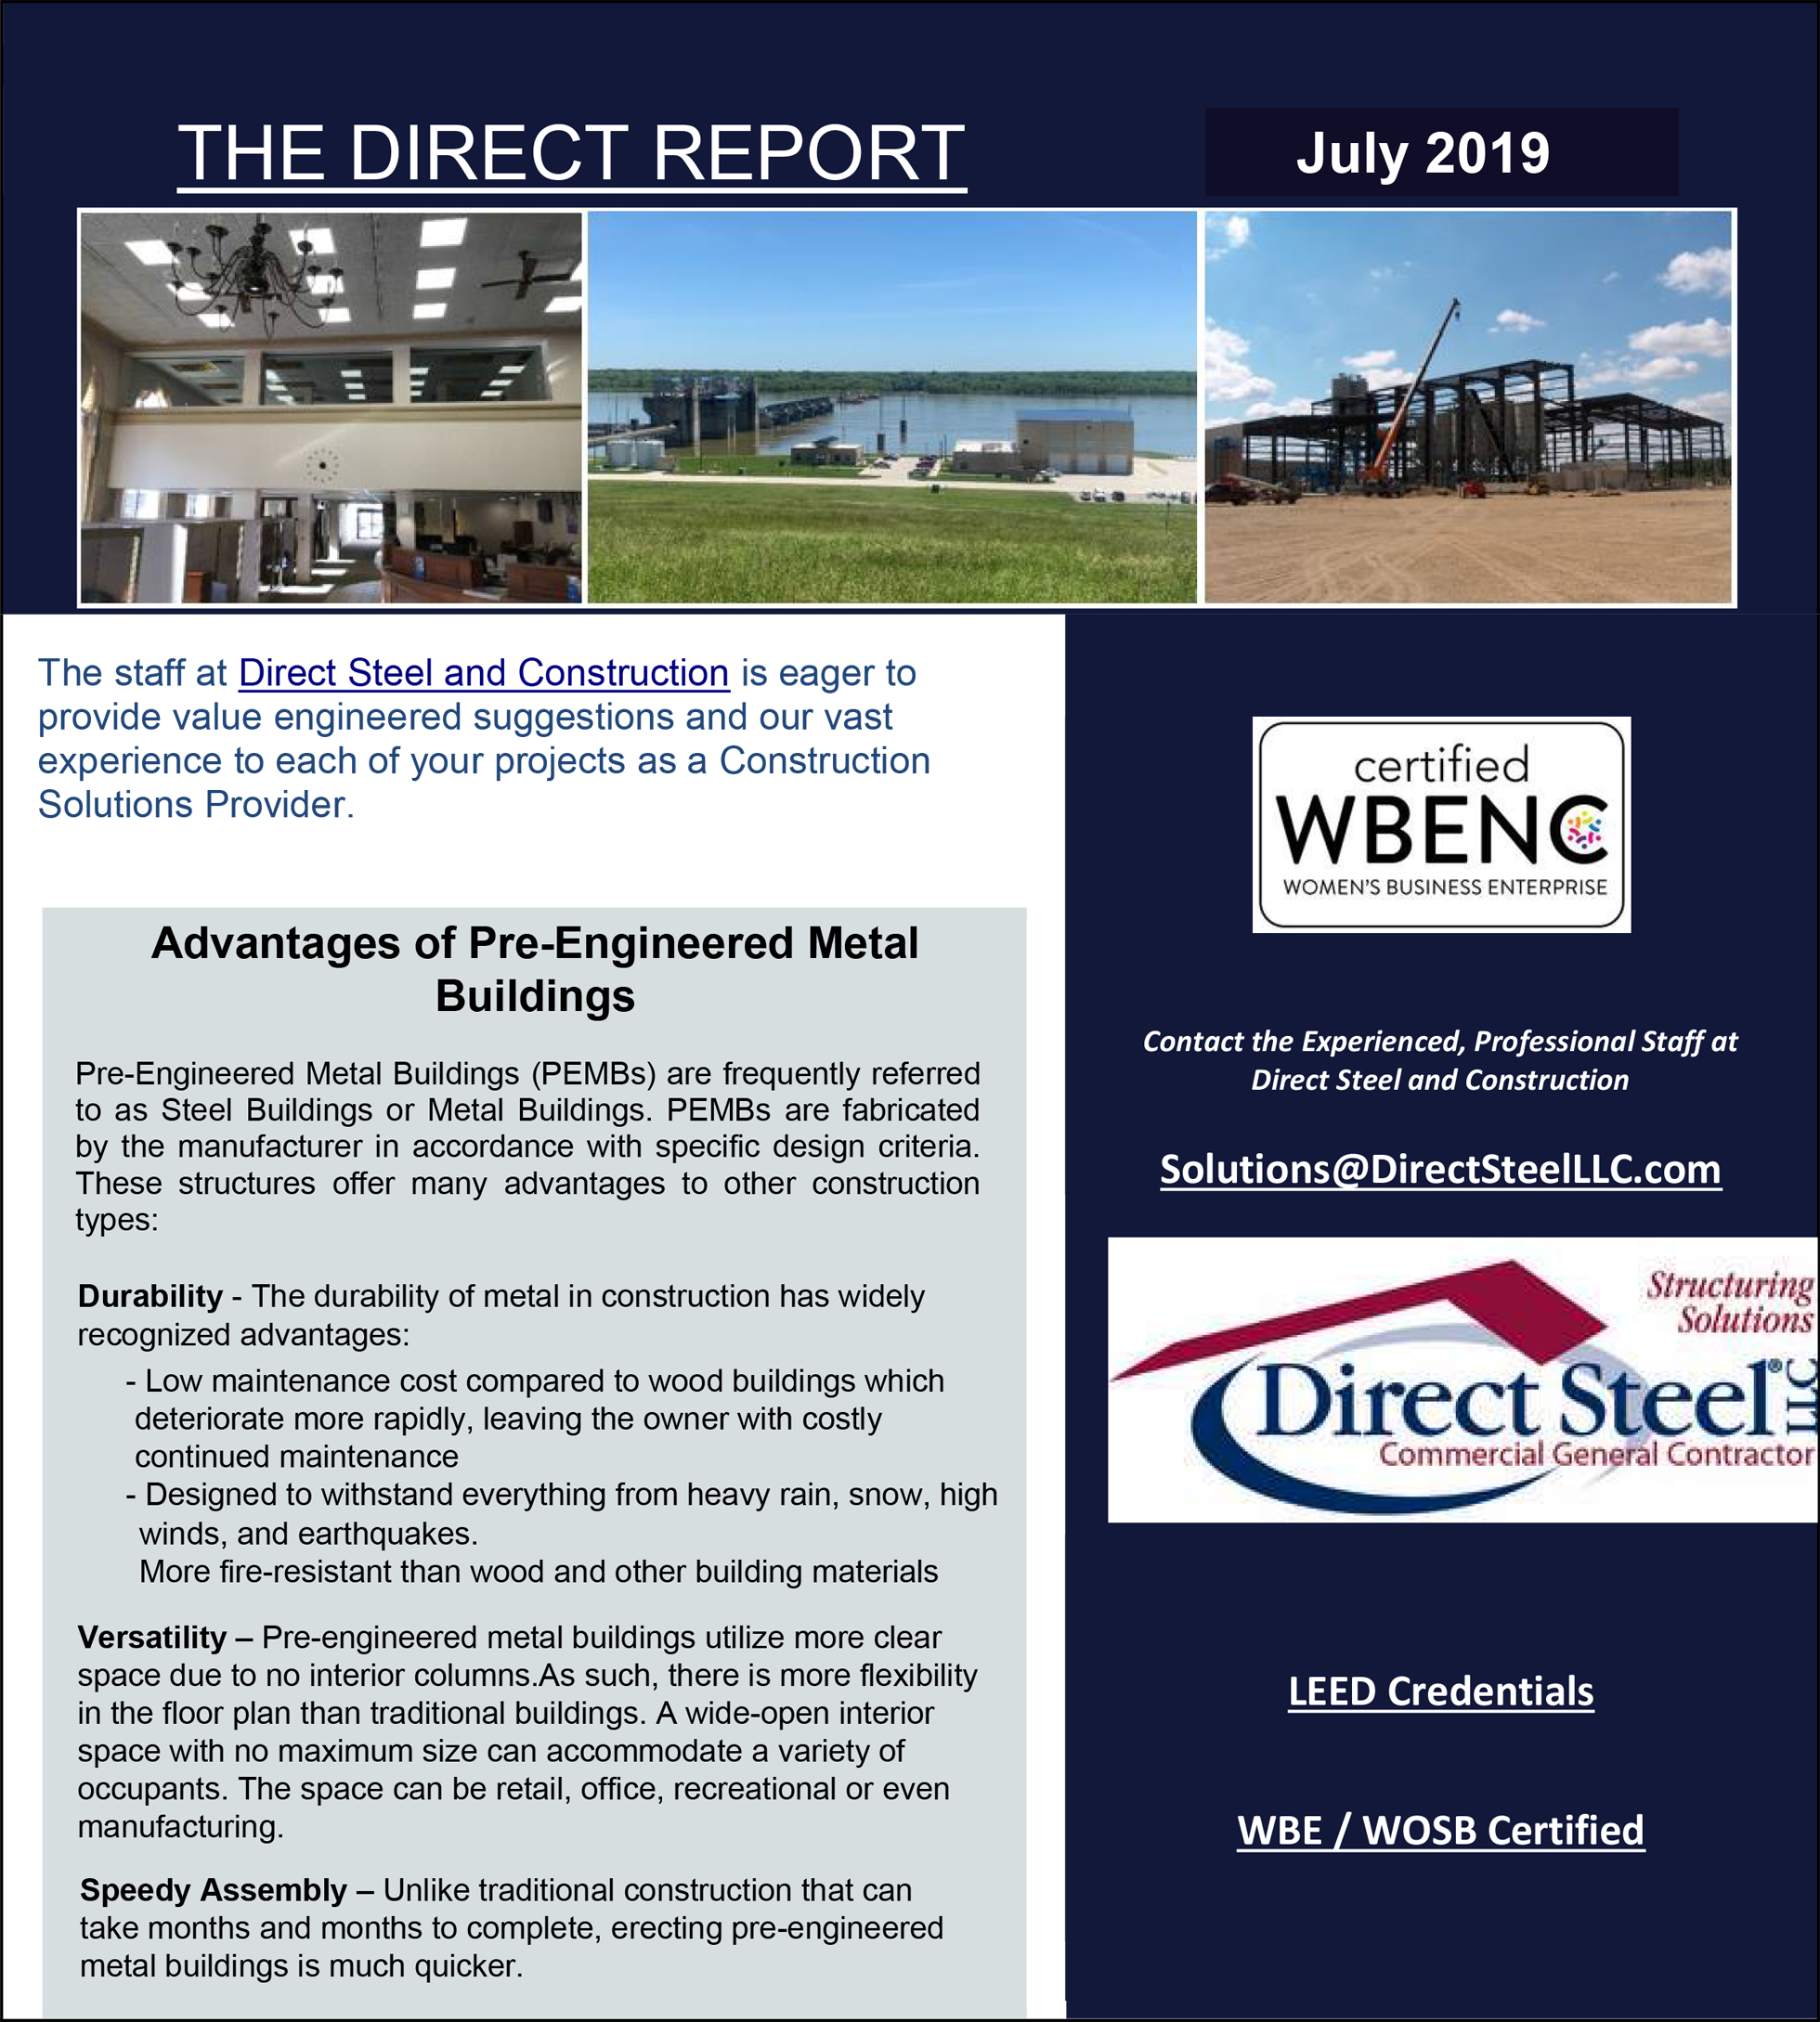 Direct Report July 2019 Page 1